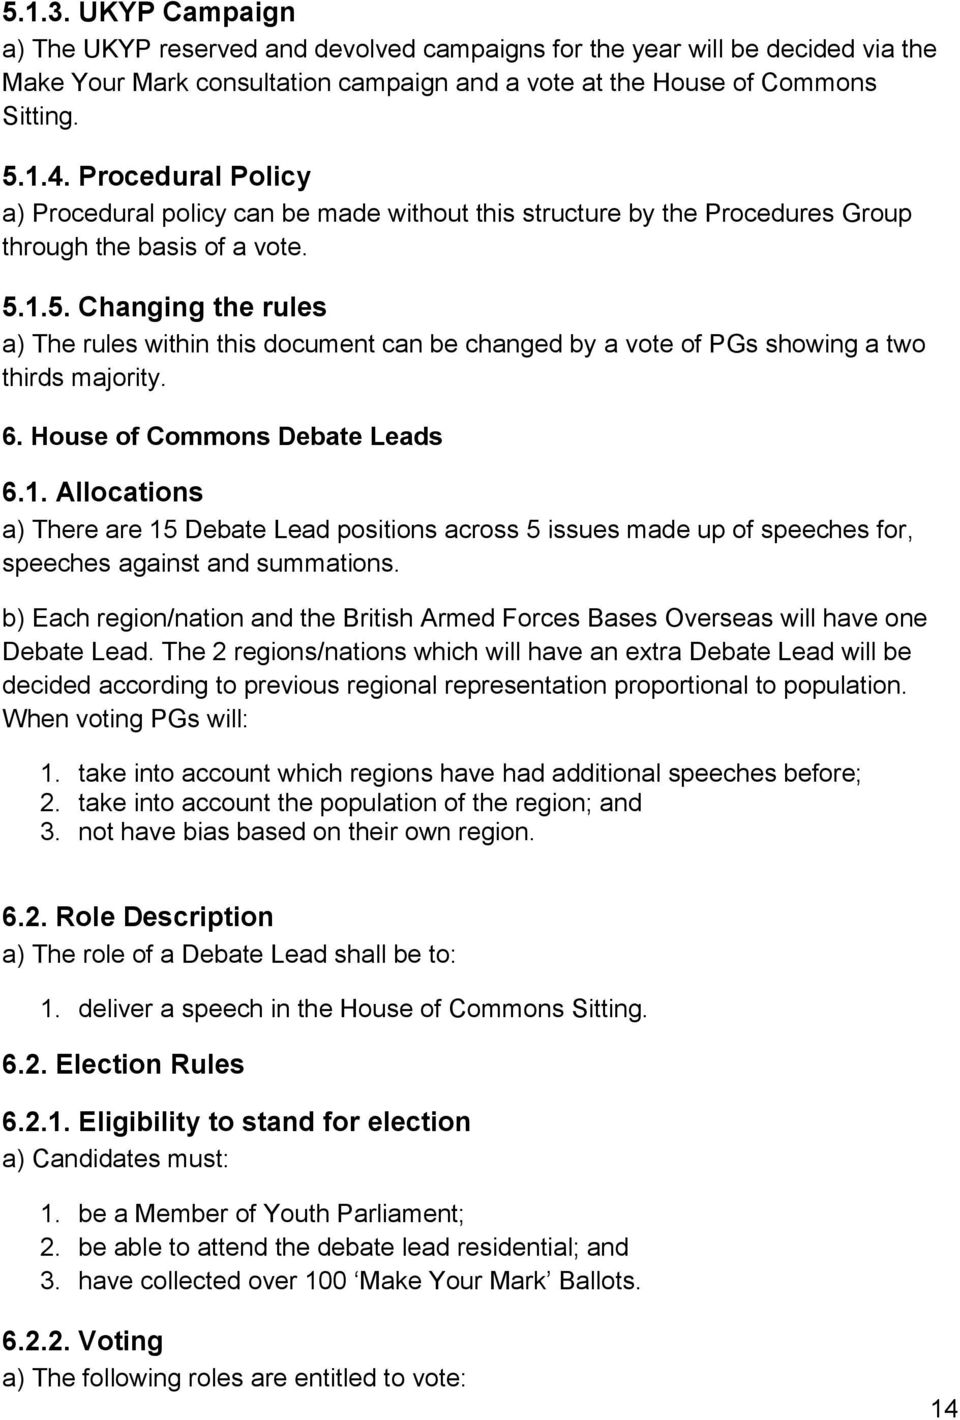 1.5. Changing the rules a) The rules within this document can be changed by a vote of PGs showing a two thirds majority. 6. House of Commons Debate Leads 6.1. Allocations a) There are 15 Debate Lead positions across 5 issues made up of speeches for, speeches against and summations.